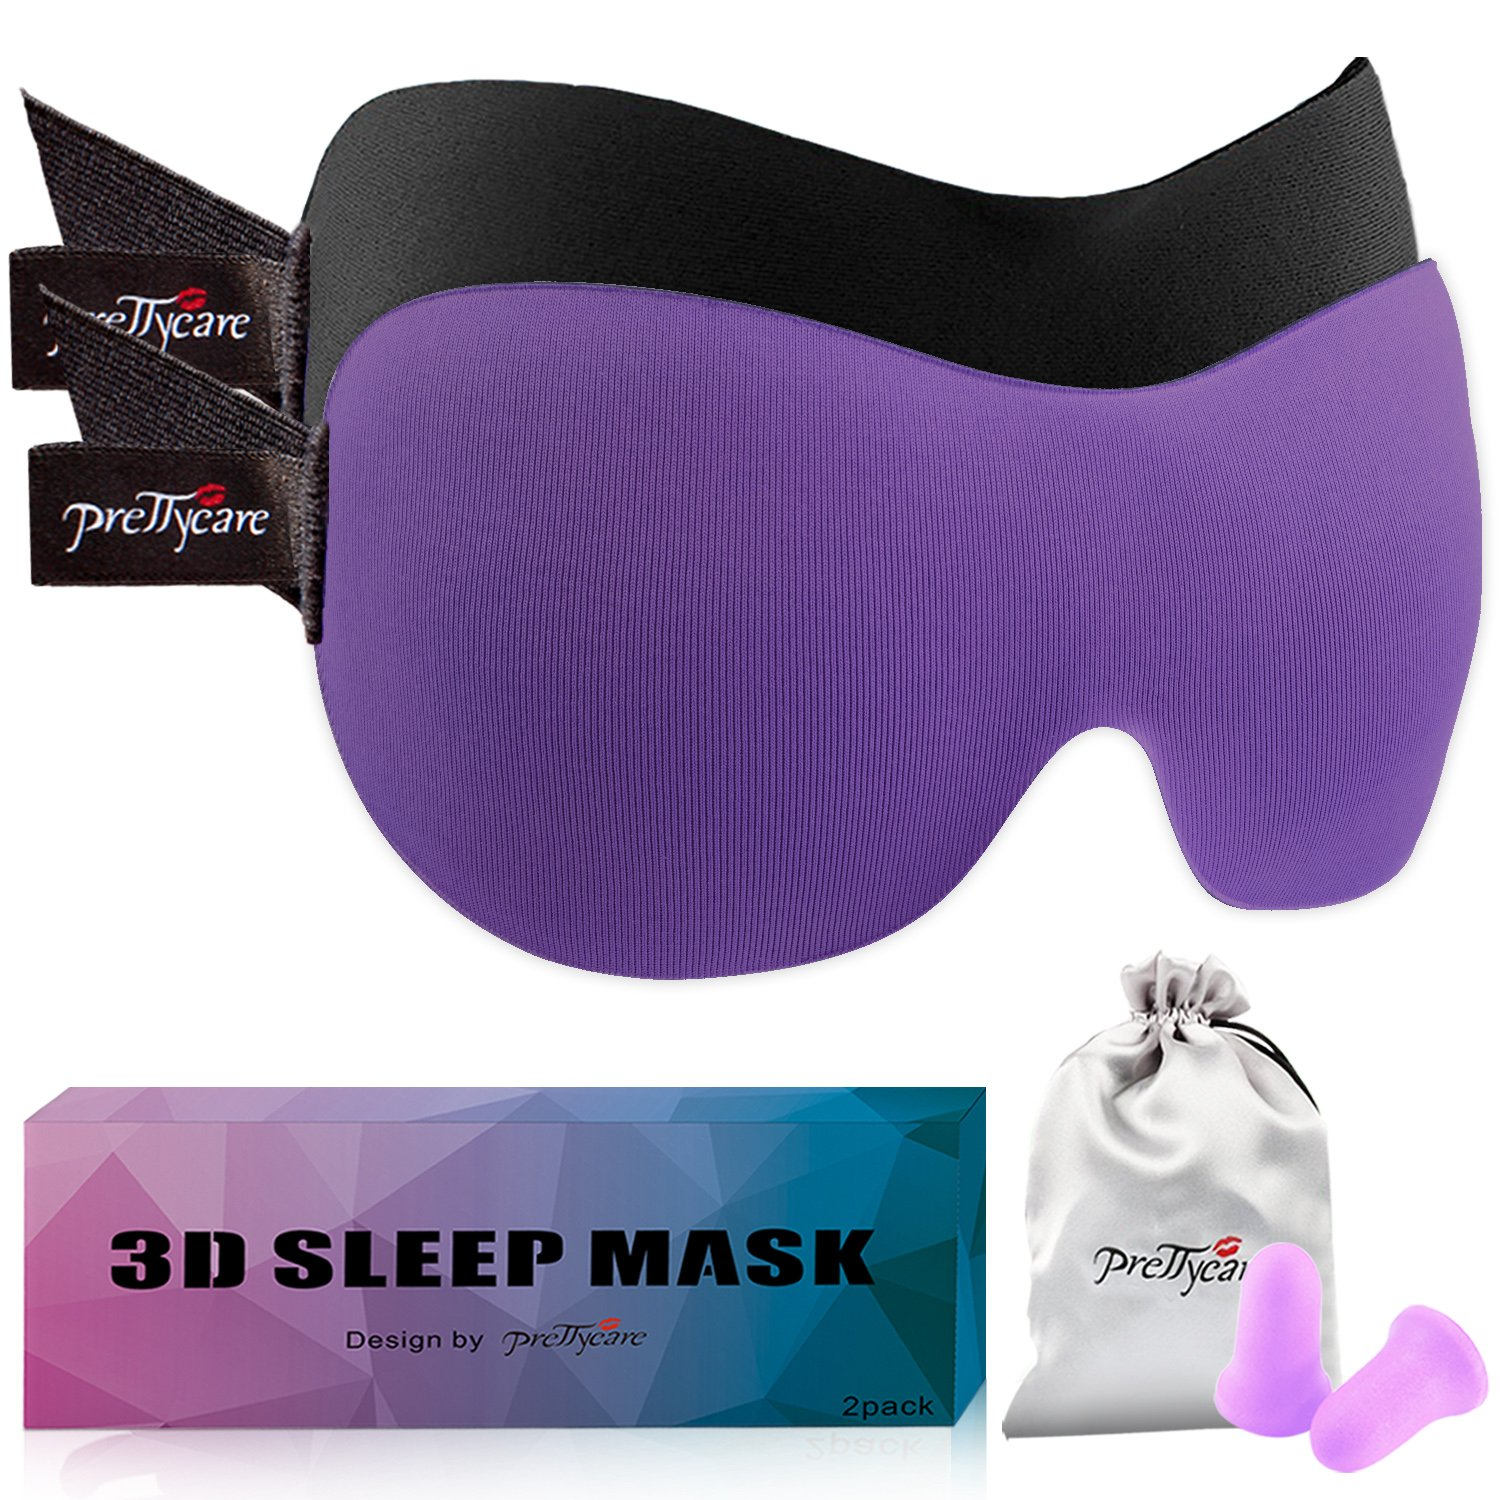 PrettyCare 3D Sleep Mask (Popular Ultra Violet Color with 2 Pack) Eye Mask for Sleeping - Contoured Night Blindfold for Airplane with EarPlugs & Yoga Silk Eye Bags for Travel, Best for Men Women